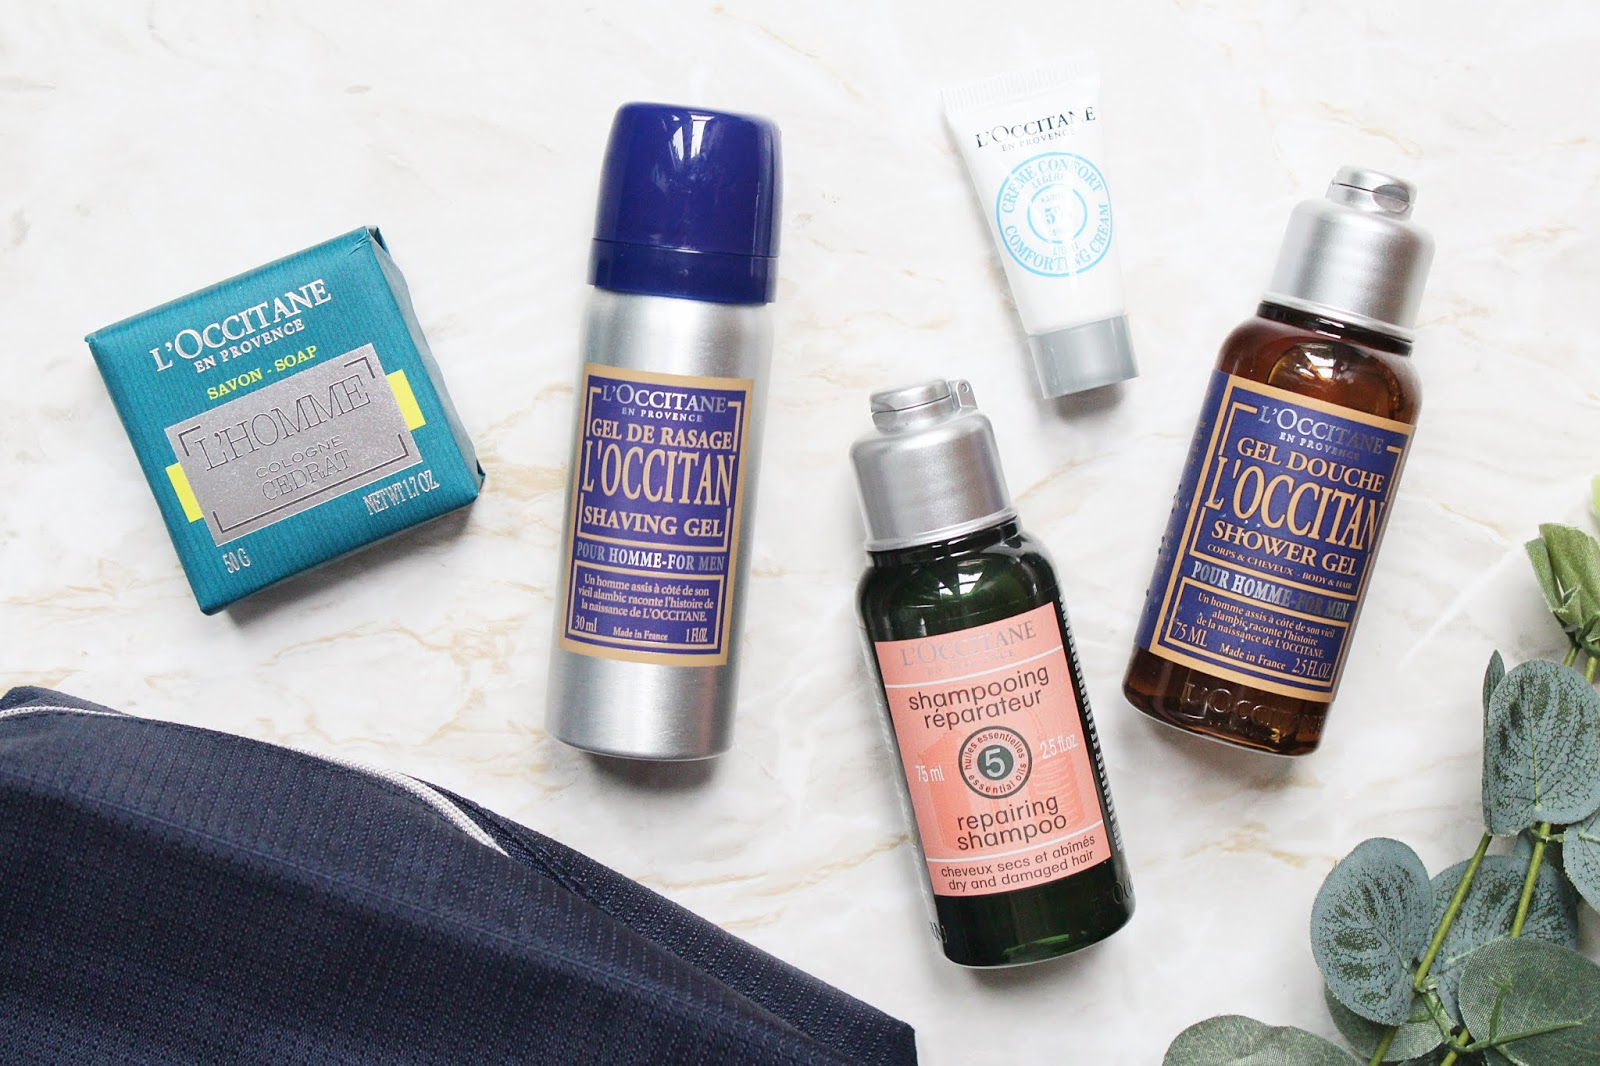 L'Occitane Father's Day